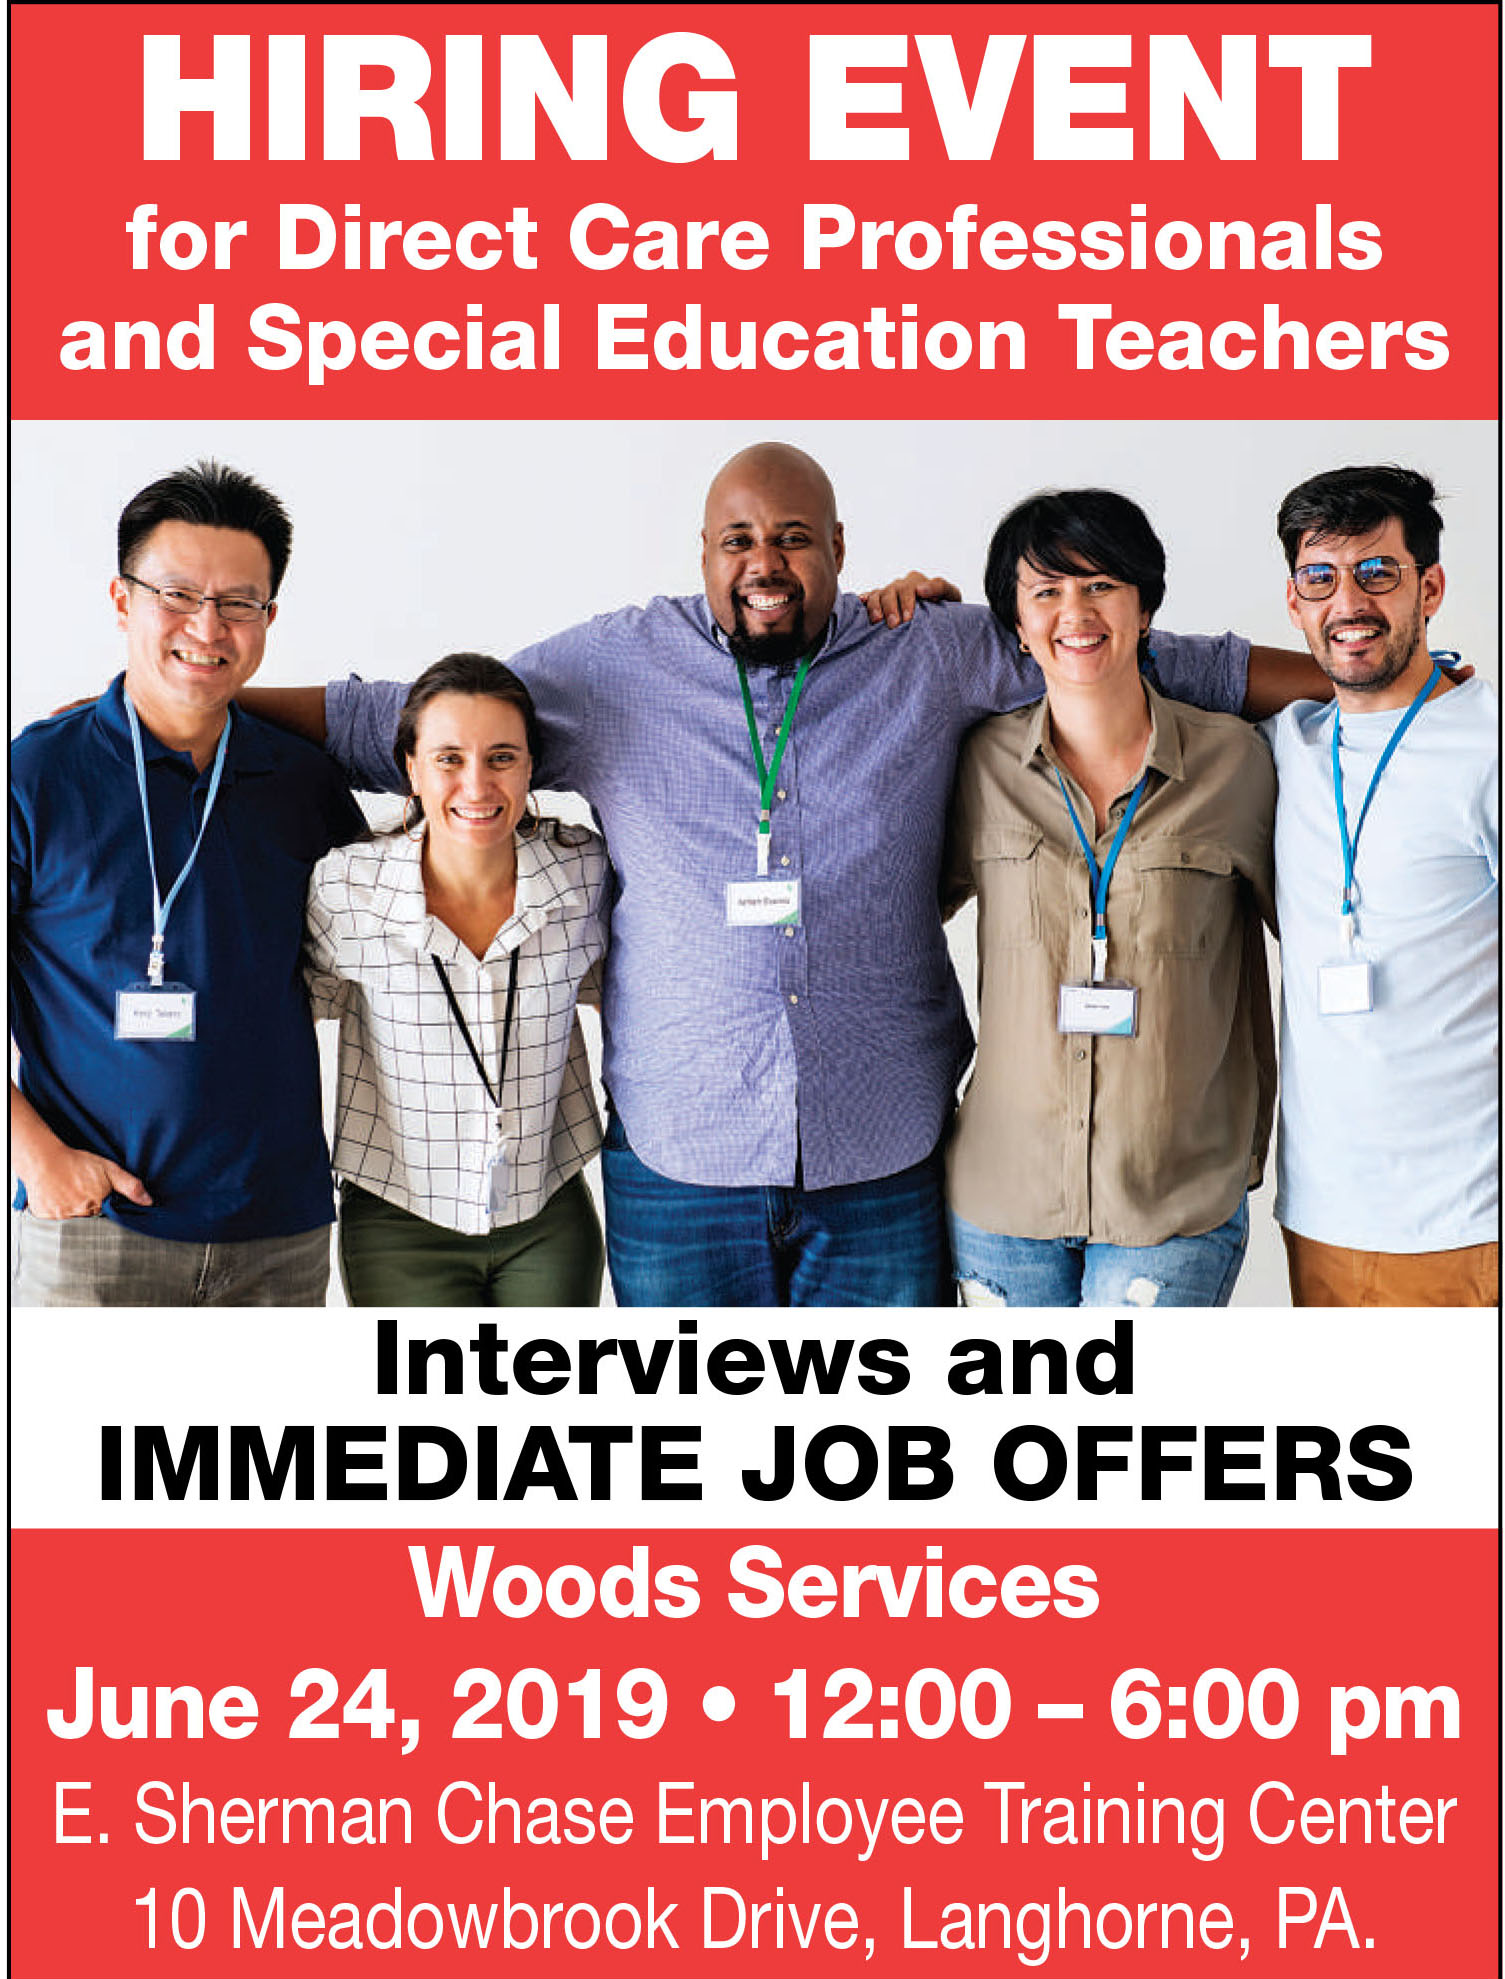 Join us for a Woods Hiring Event on Monday, June 24th from 12-6 pm